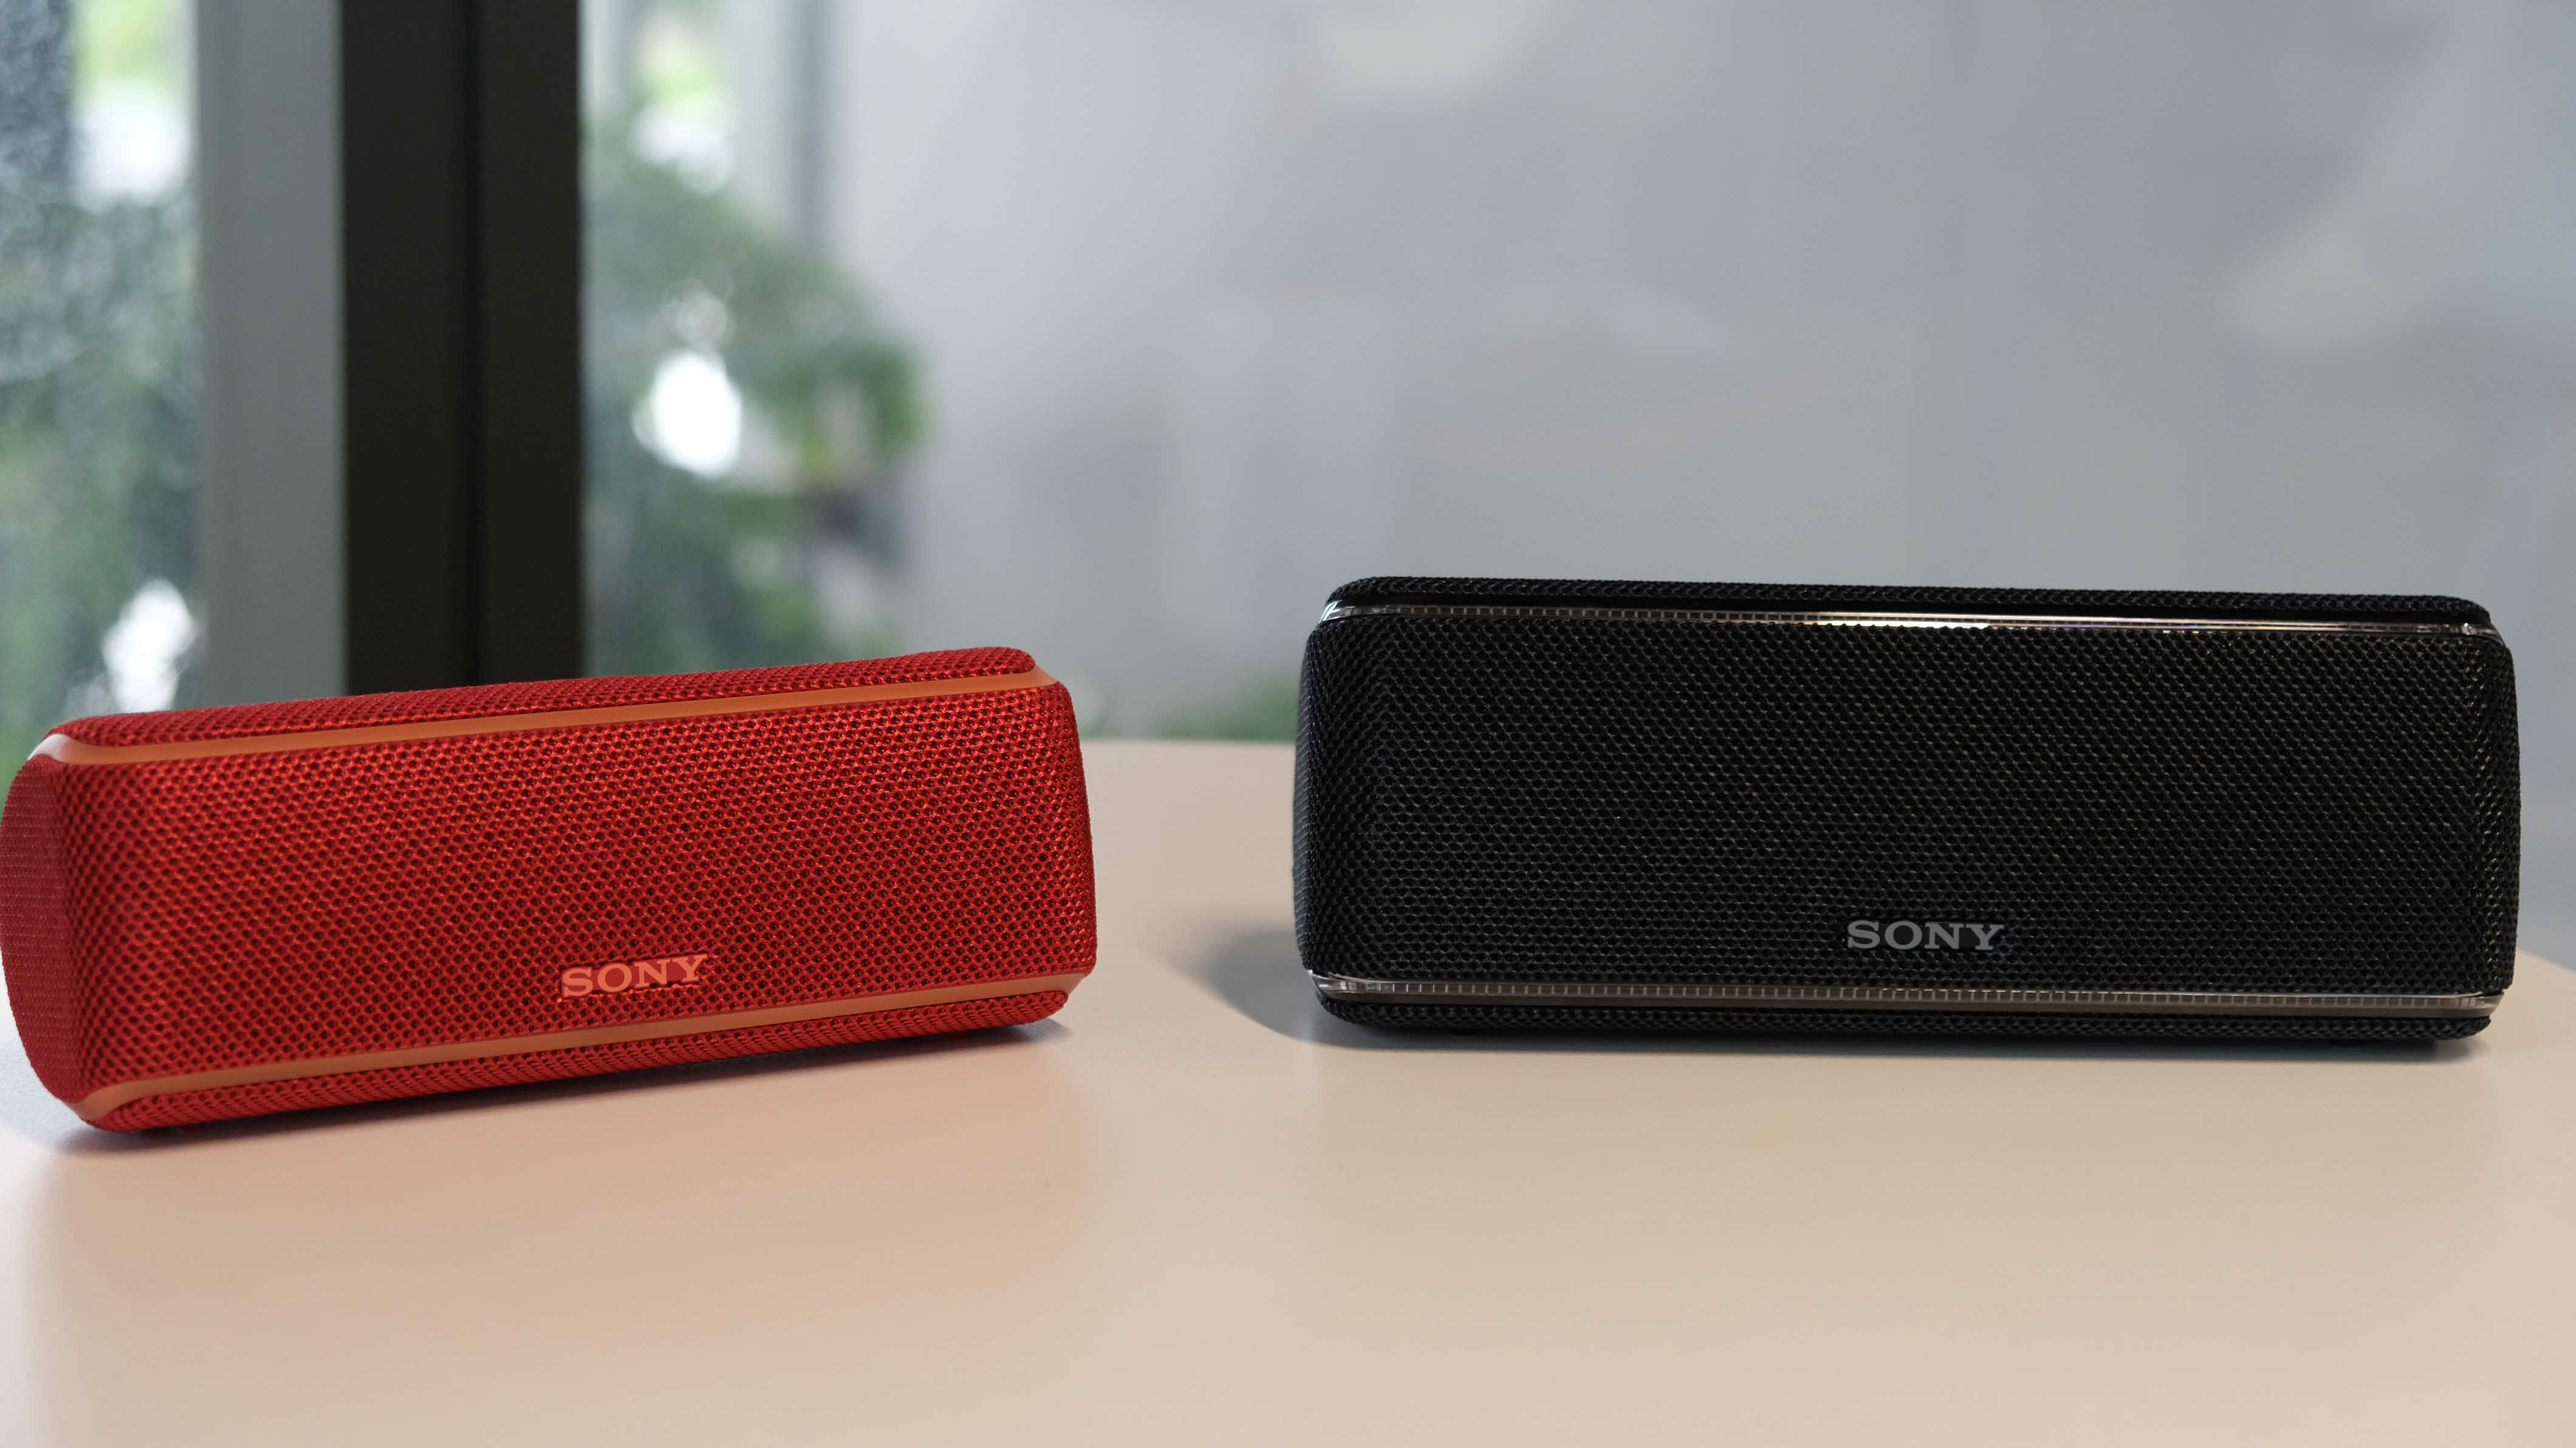 Sony Srs Xb21 Sony Srs Xb31 Blutooth Speaker Review Advertorial 002